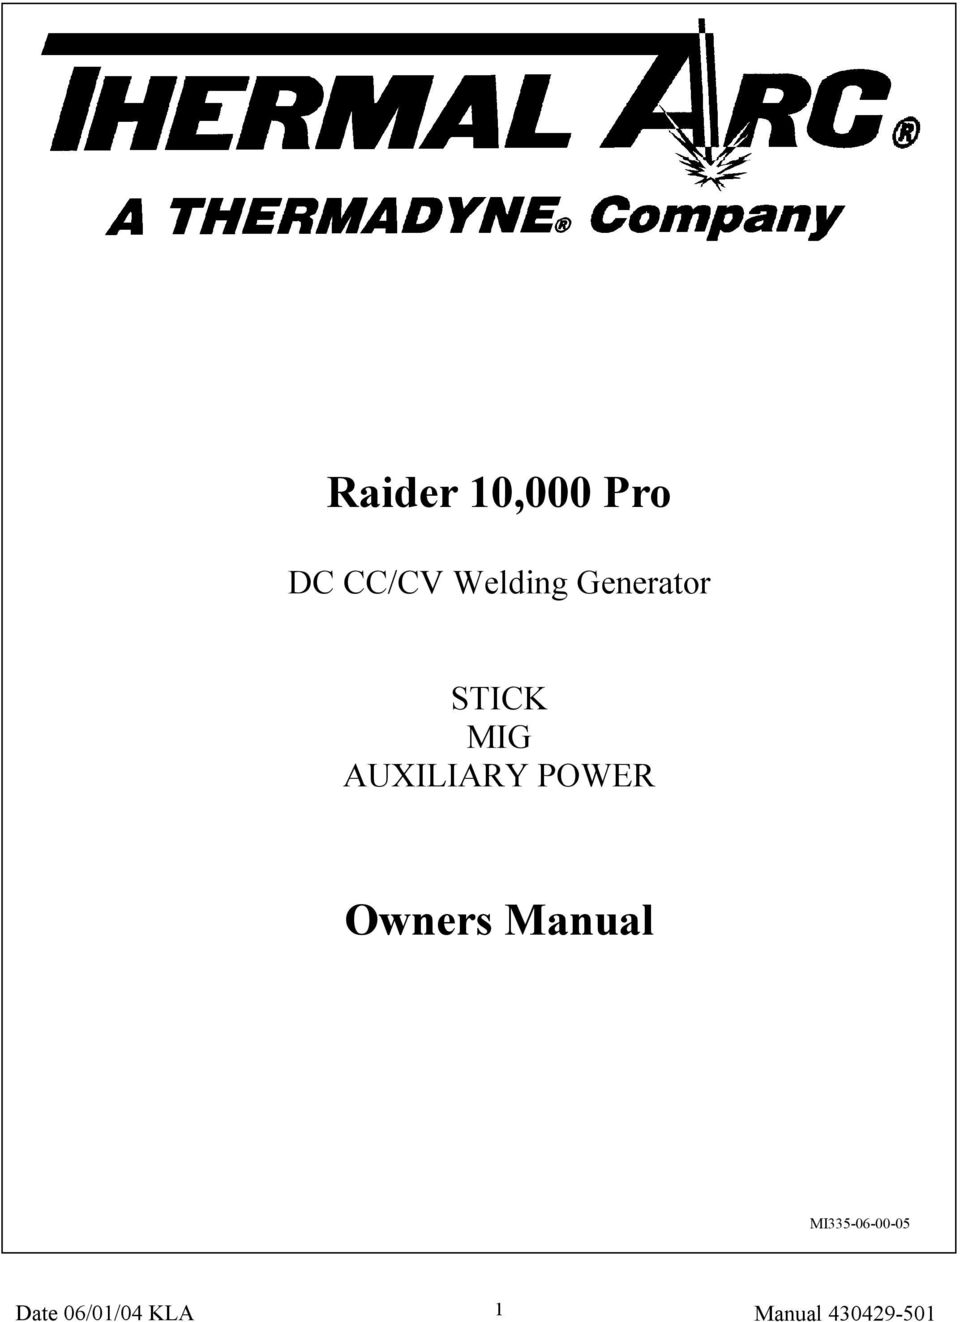 hight resolution of power owners manual mi335 06 00 05